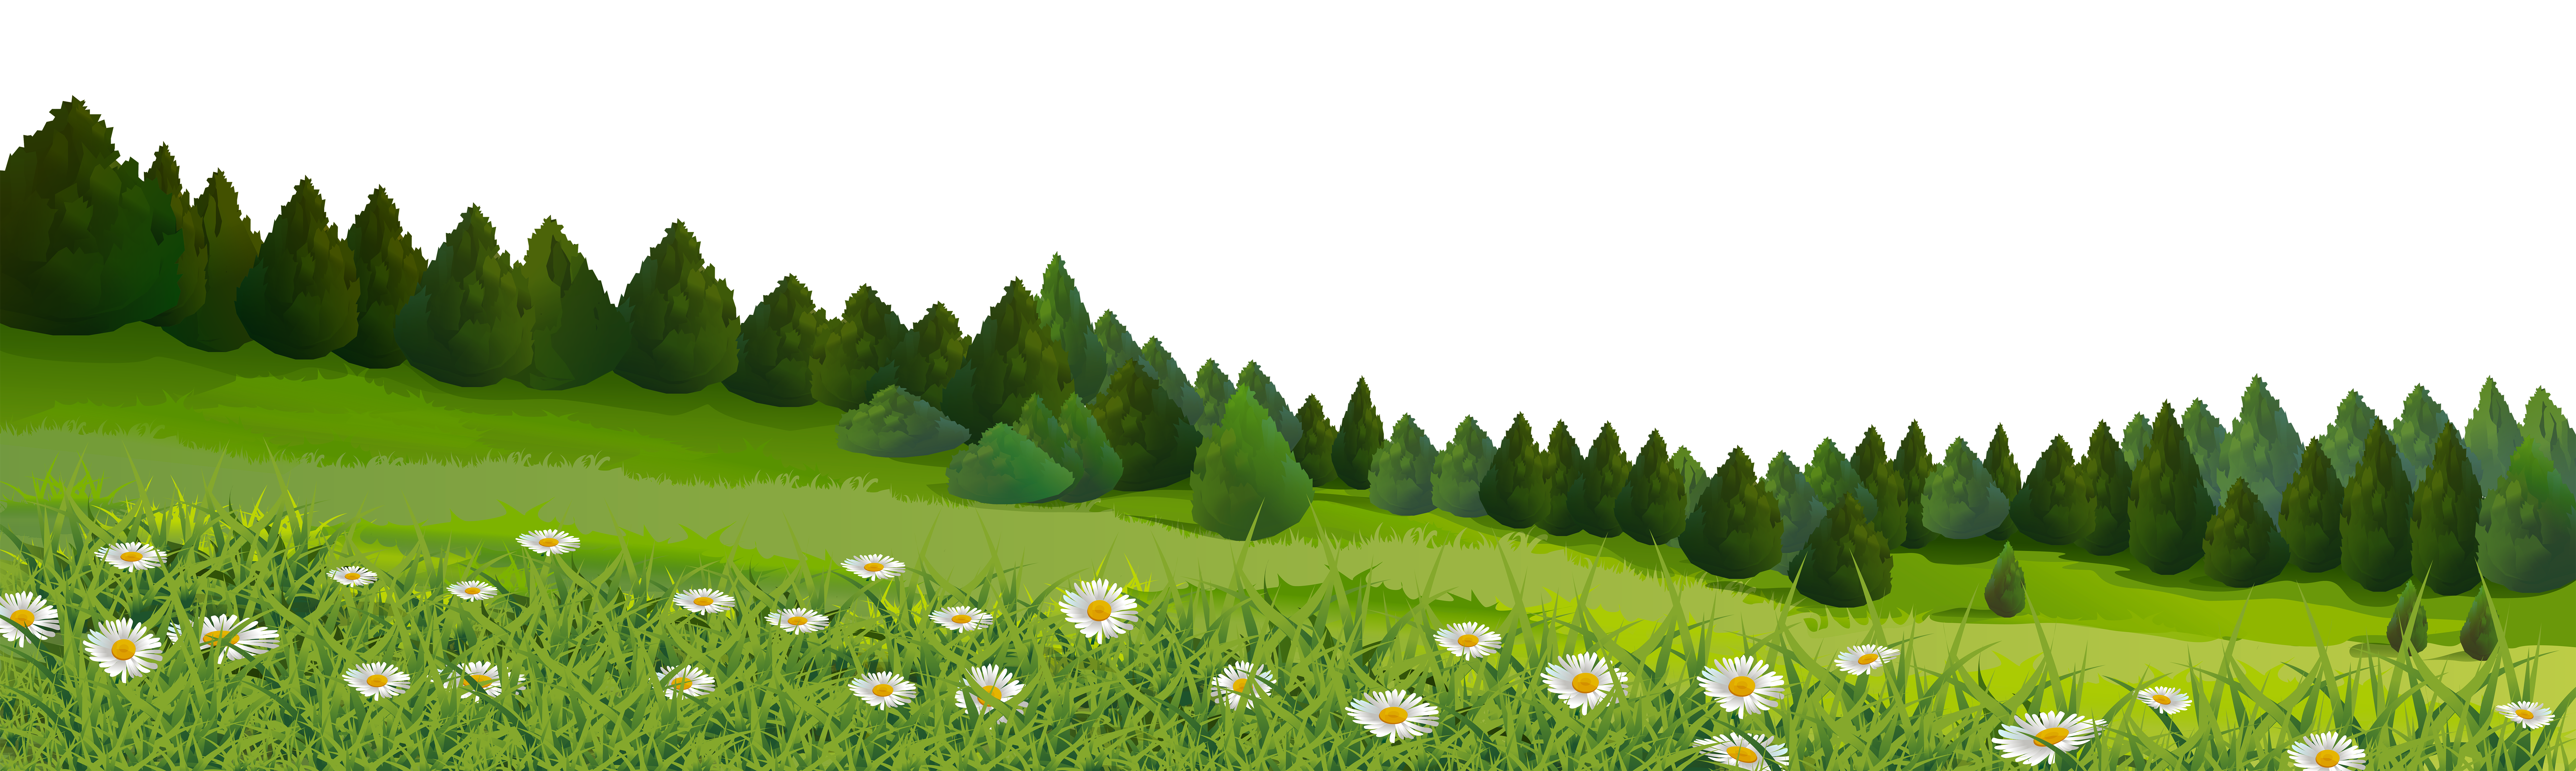 See clipart tree grass #10